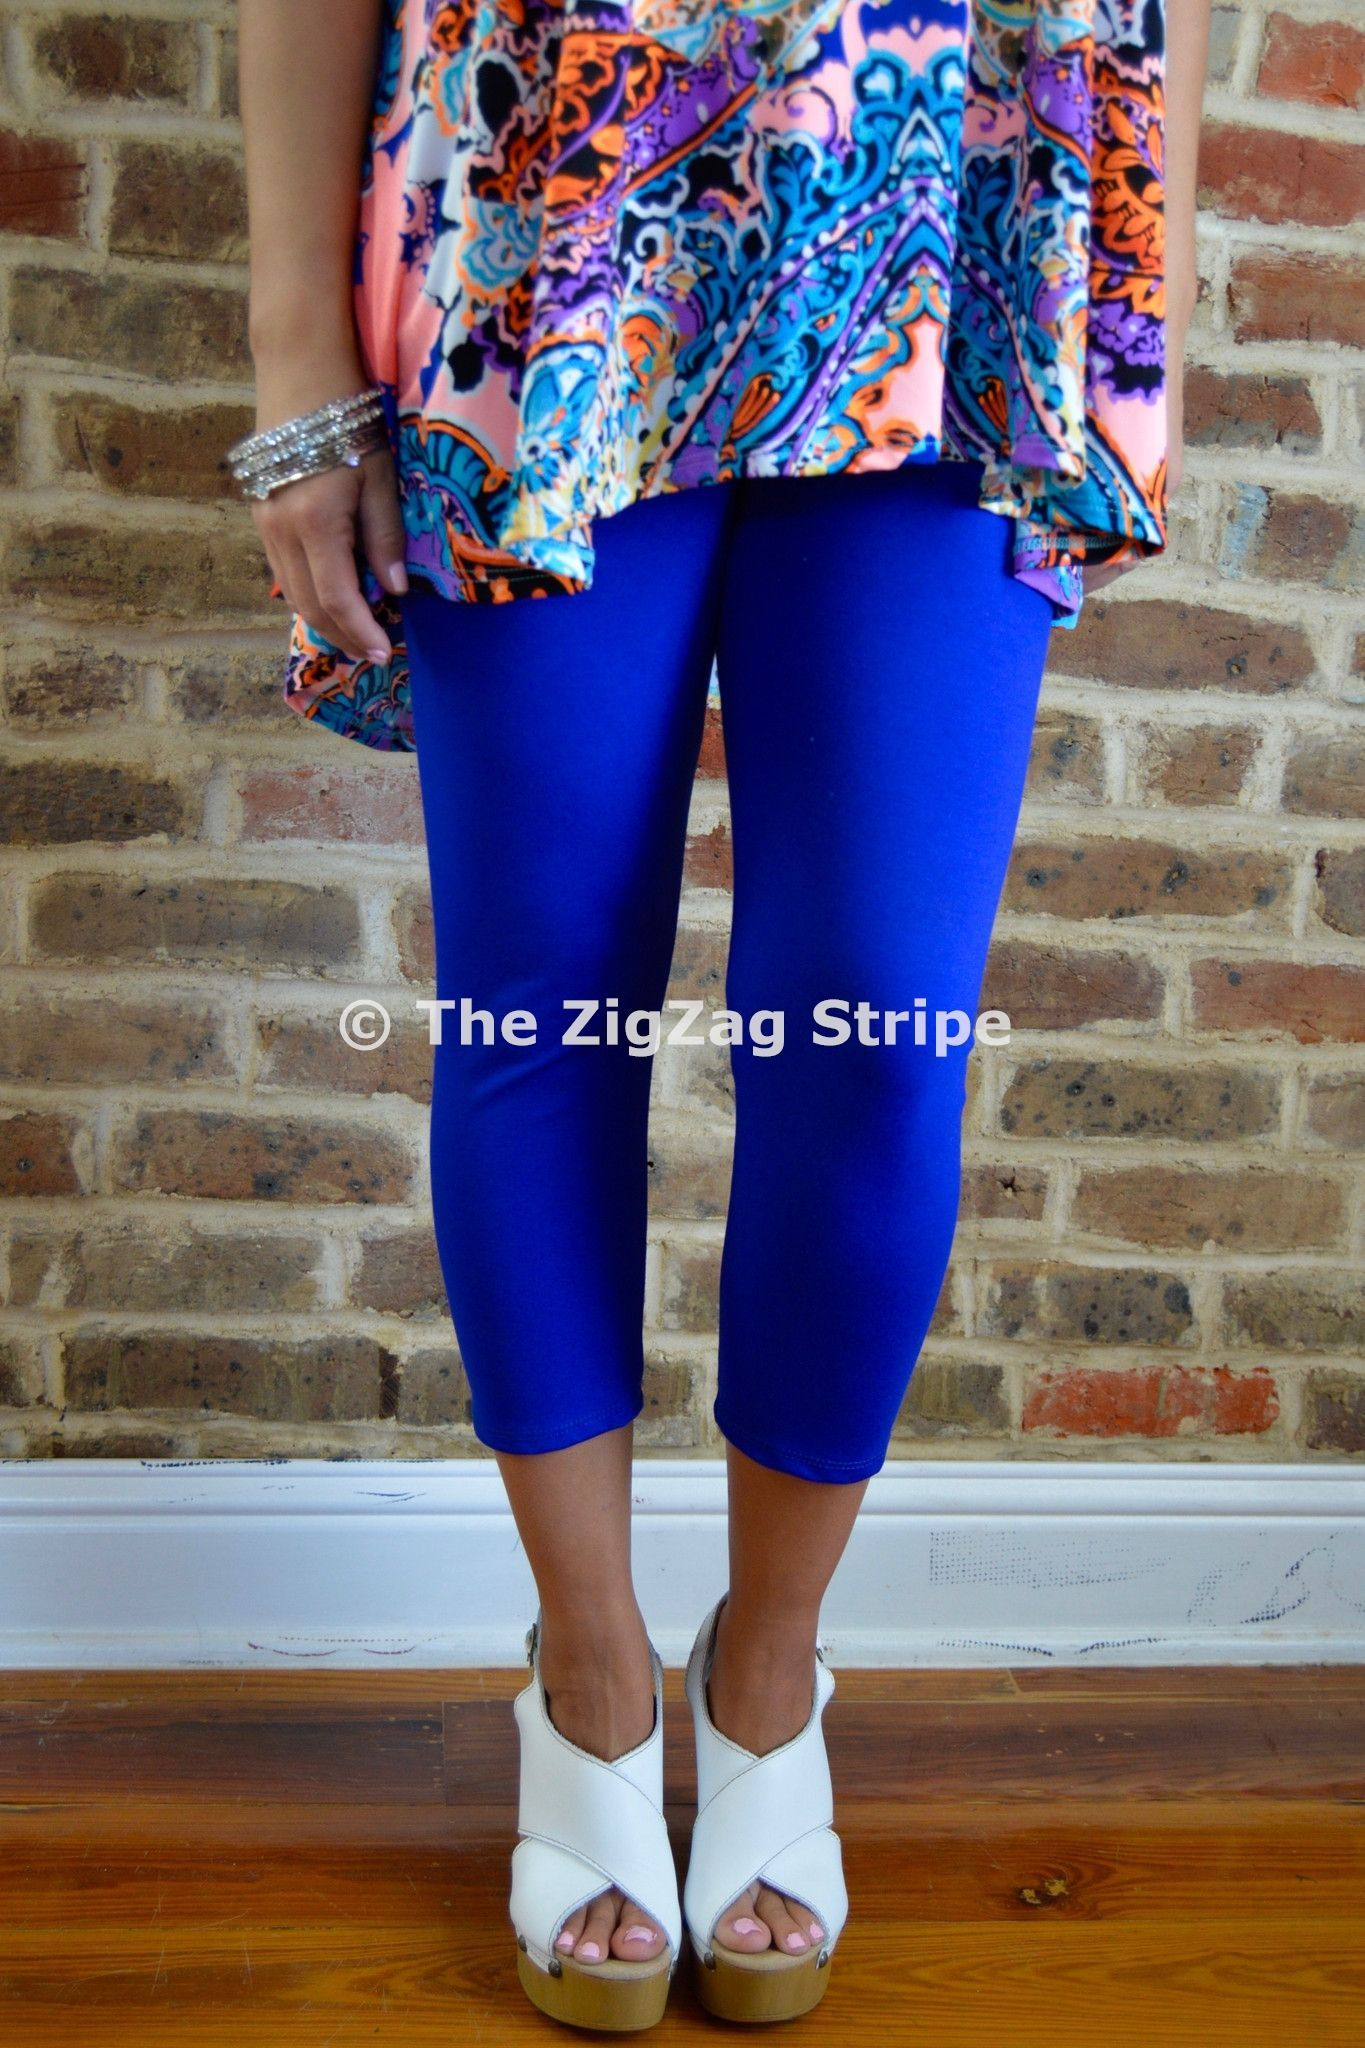 Royal Capri Skinnies – The ZigZag Stripe. Use coupon code ZZS72 to save 10%, and shipping is FREE! http://www.zigzagstripe.com?afmc=ZZS72